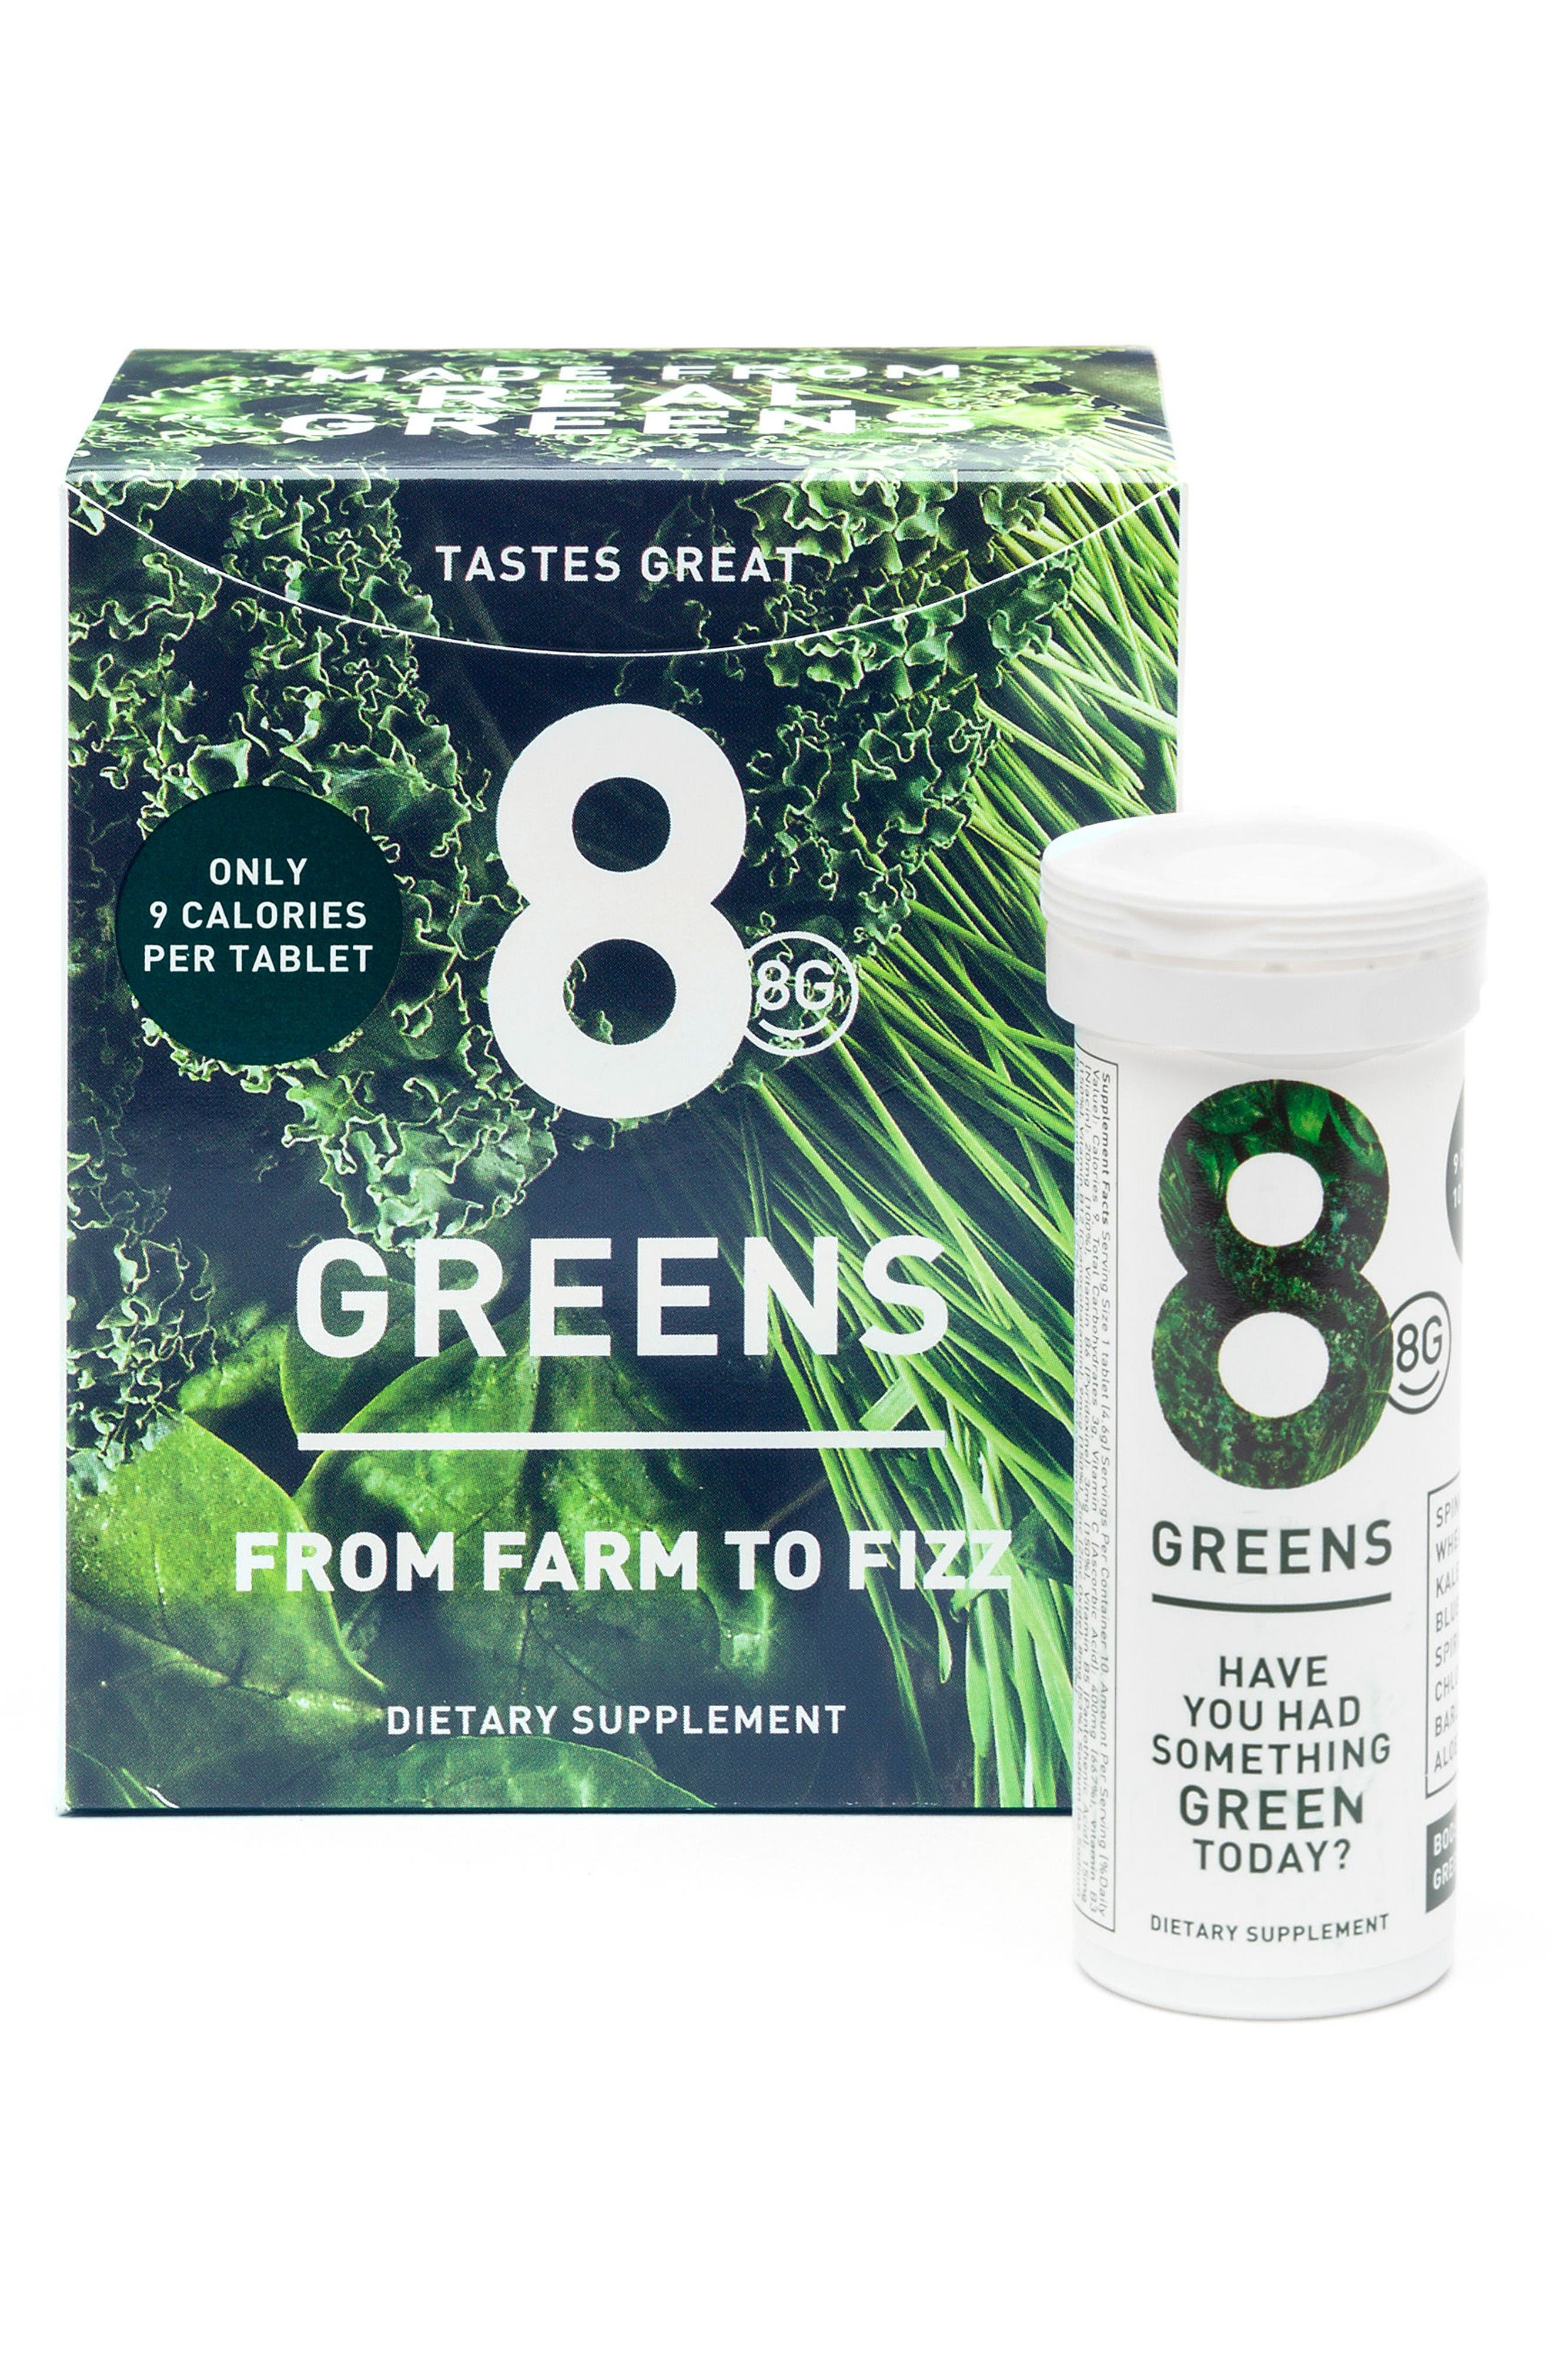 8G Greens 6-Pack Dietary Supplement ($84 Value)